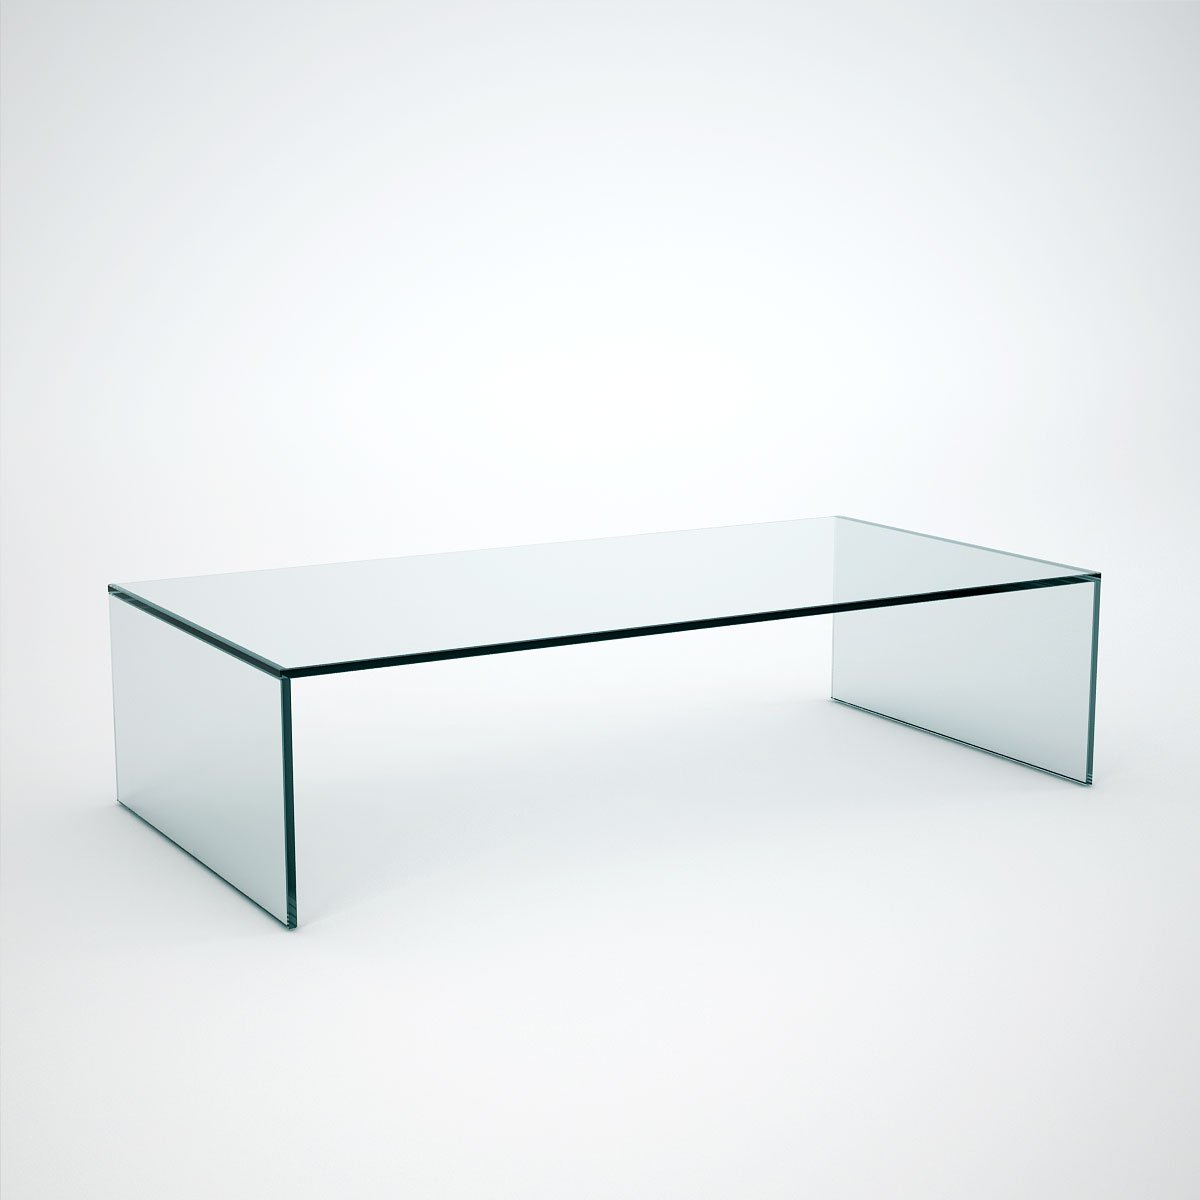 Judd Rectangle Glass Coffee Table Klarity Glass Furniture